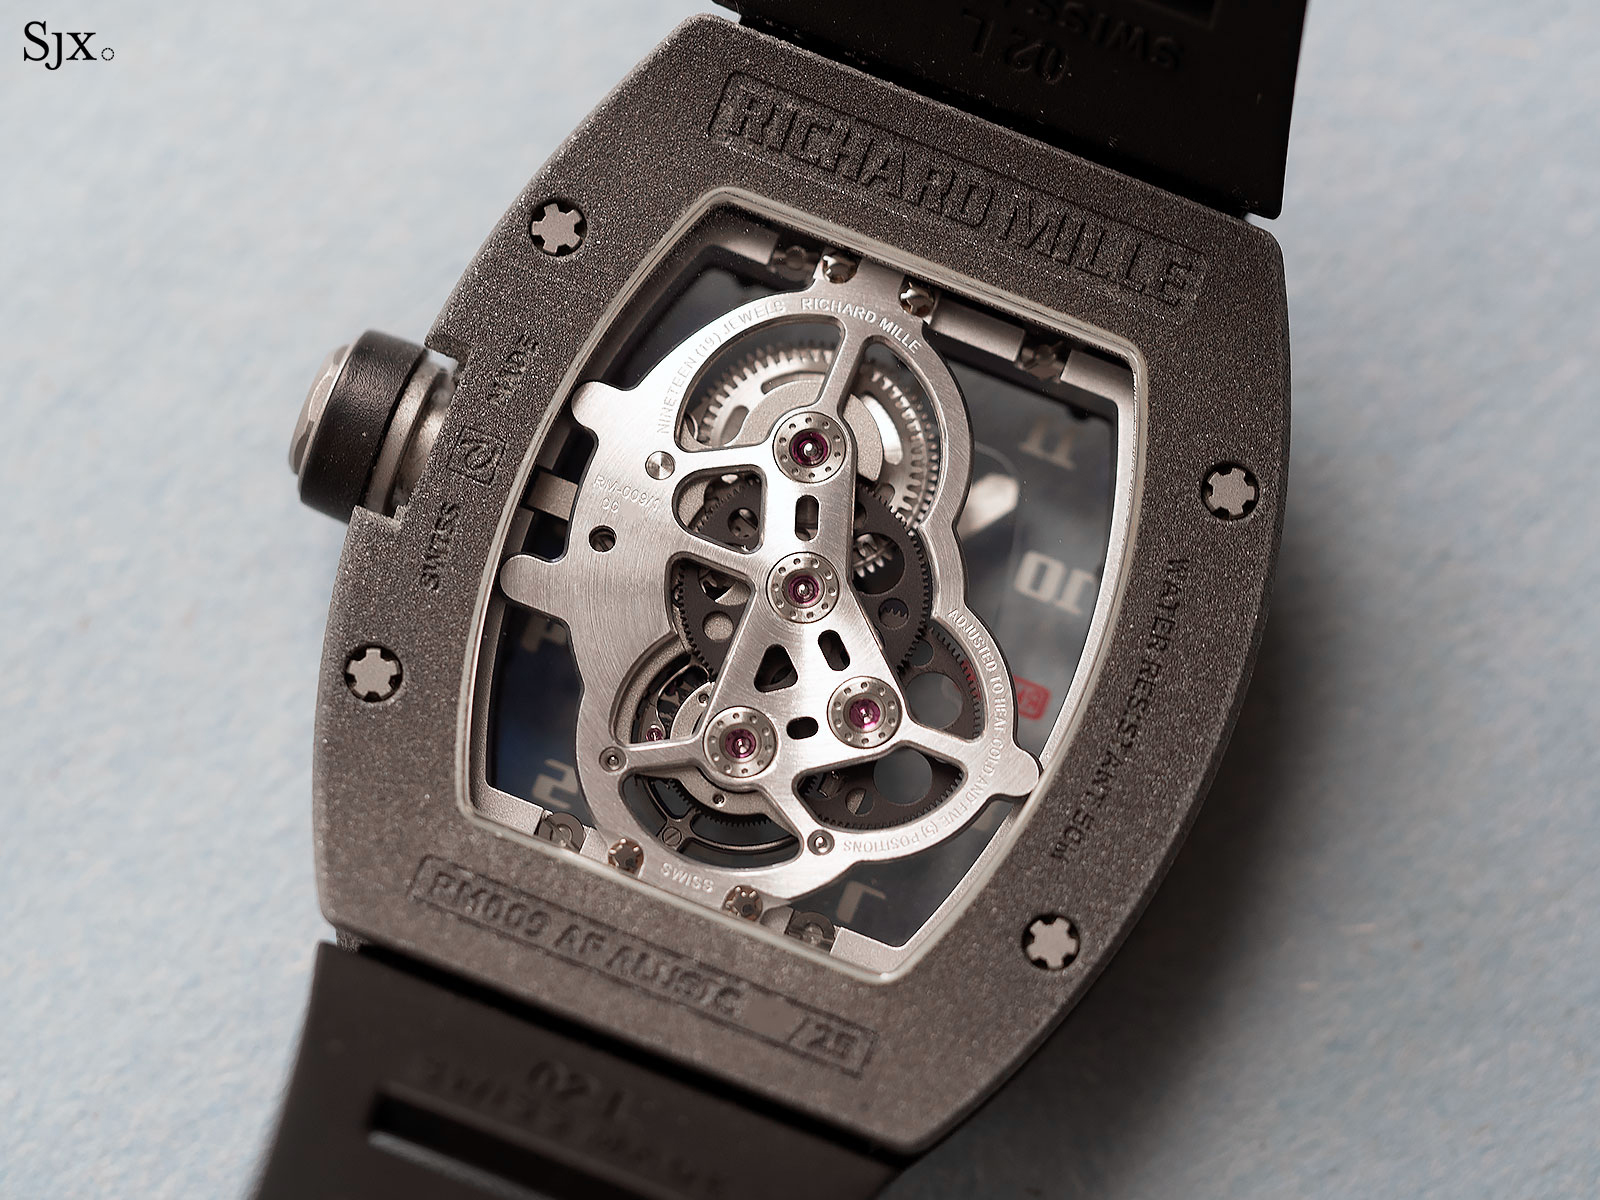 Richard Mille RM009 Alusic tourbillon 7